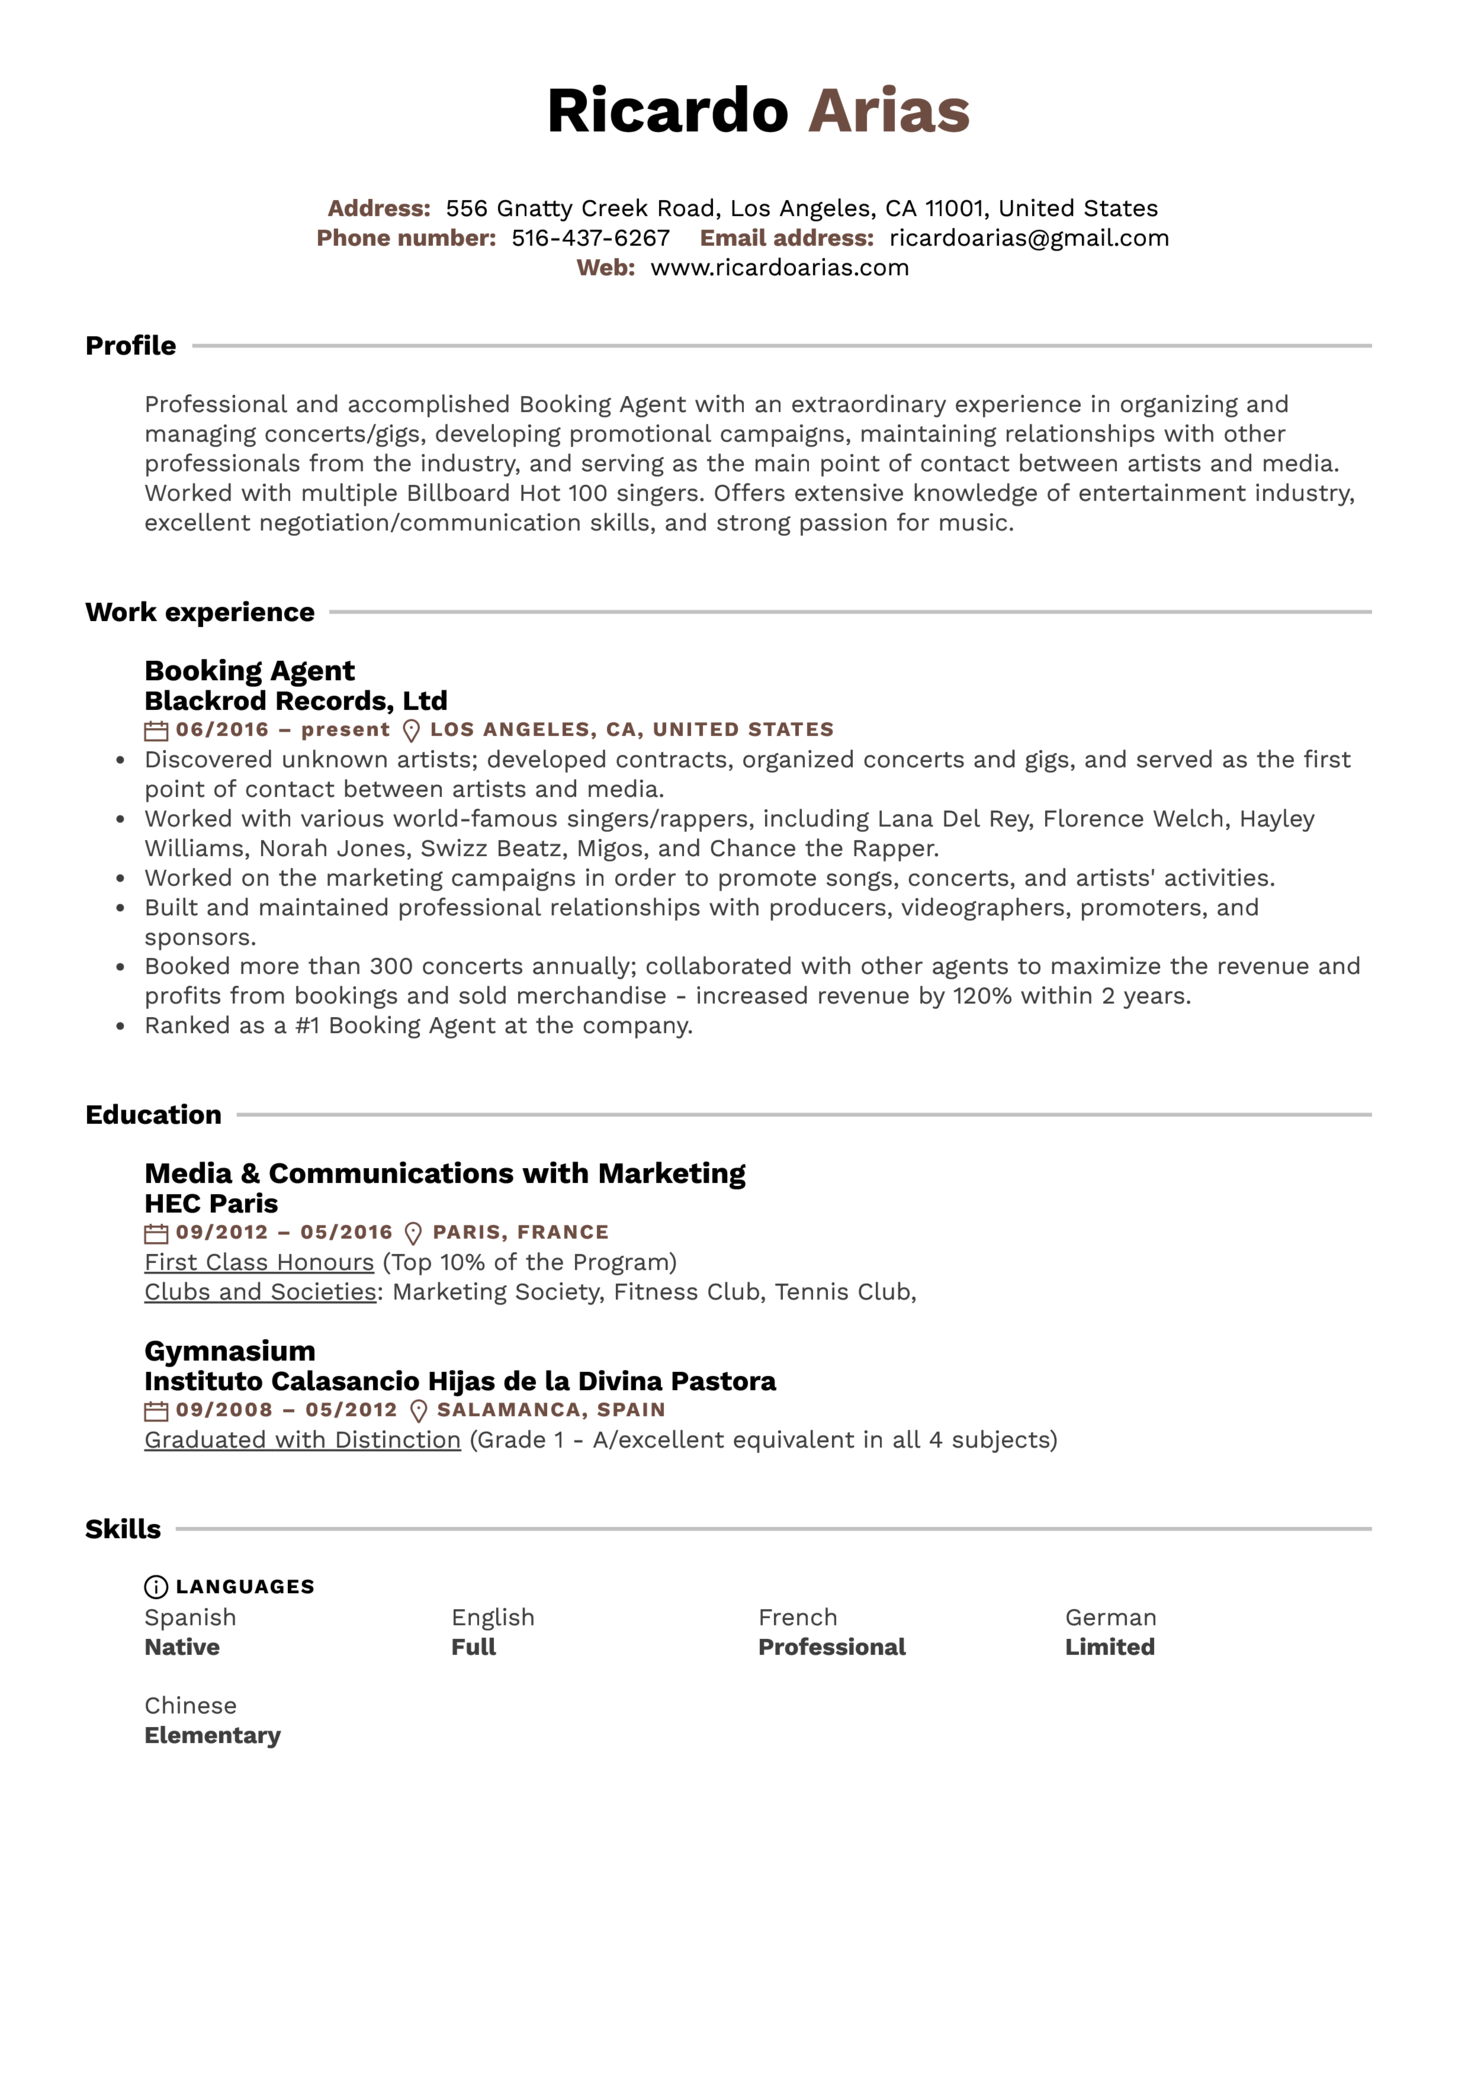 Booking Agent Resume Sample (parte 1)